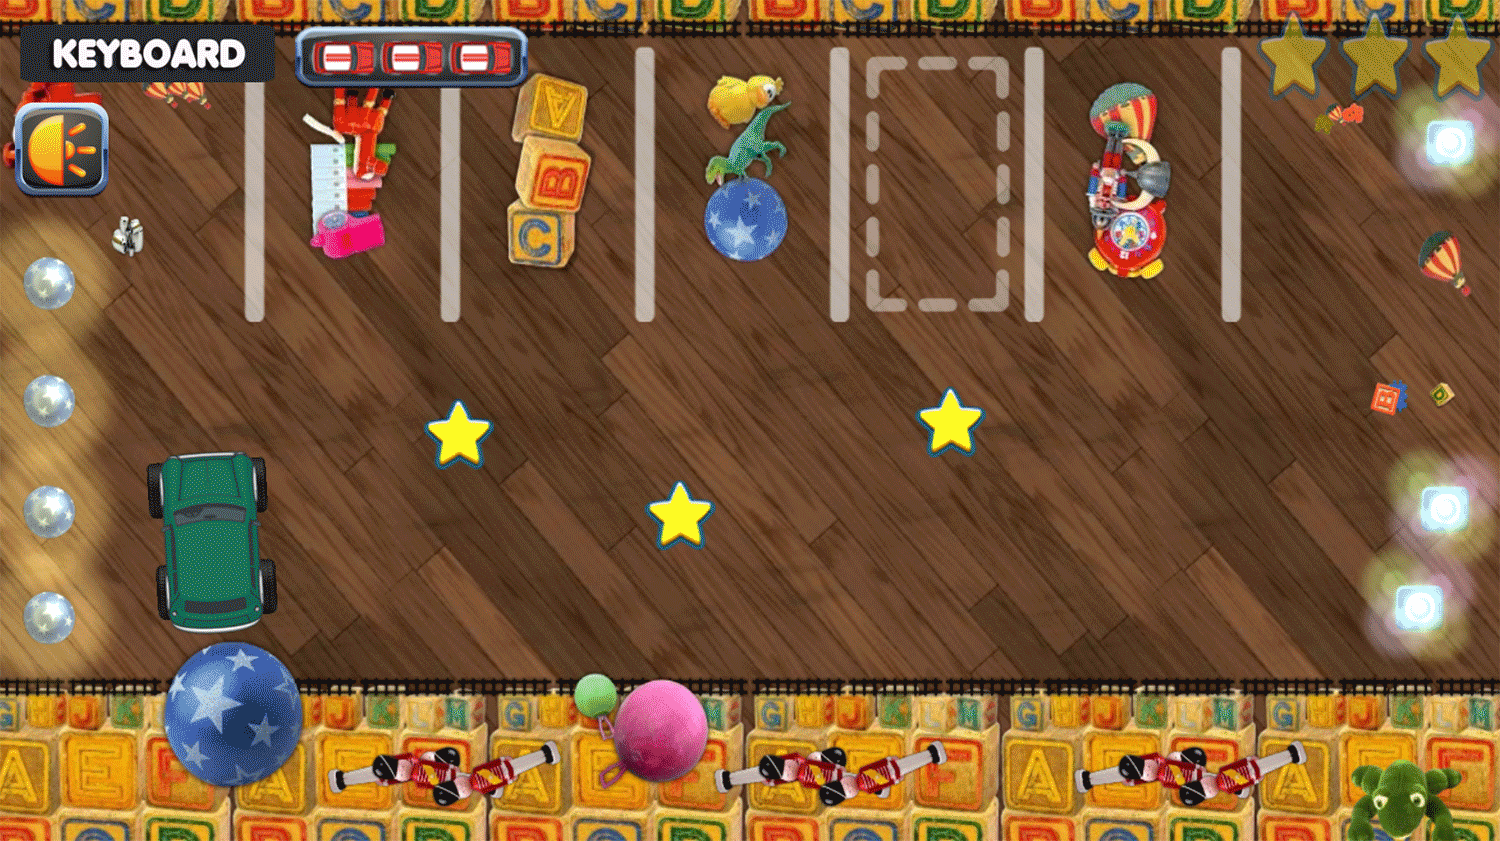 Parking Toy Story Game Screen.